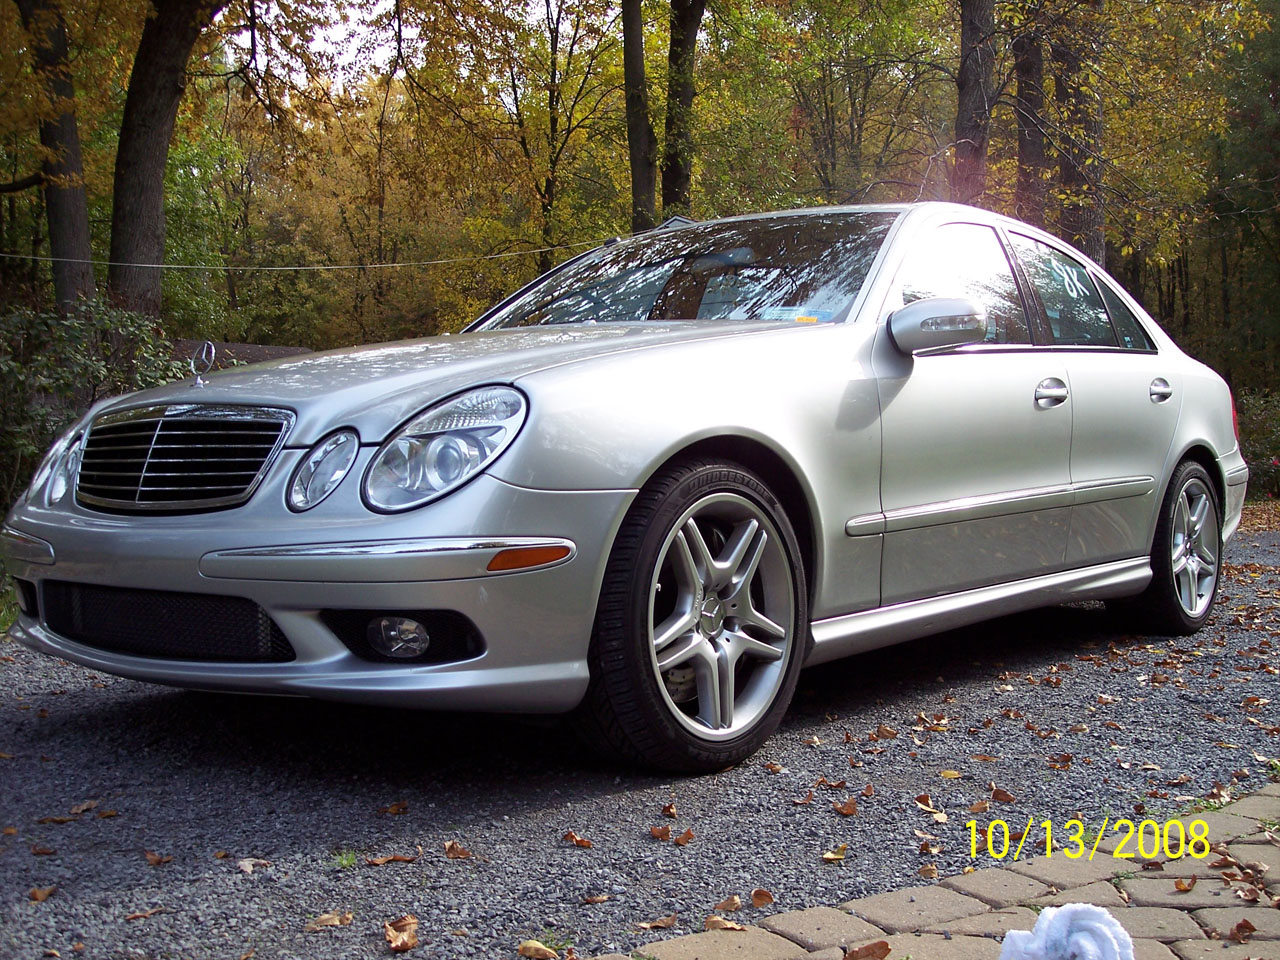 2003 mercedes benz e55 amg let stage 1 1 4 mile trap for Mercedes benz e 55 amg